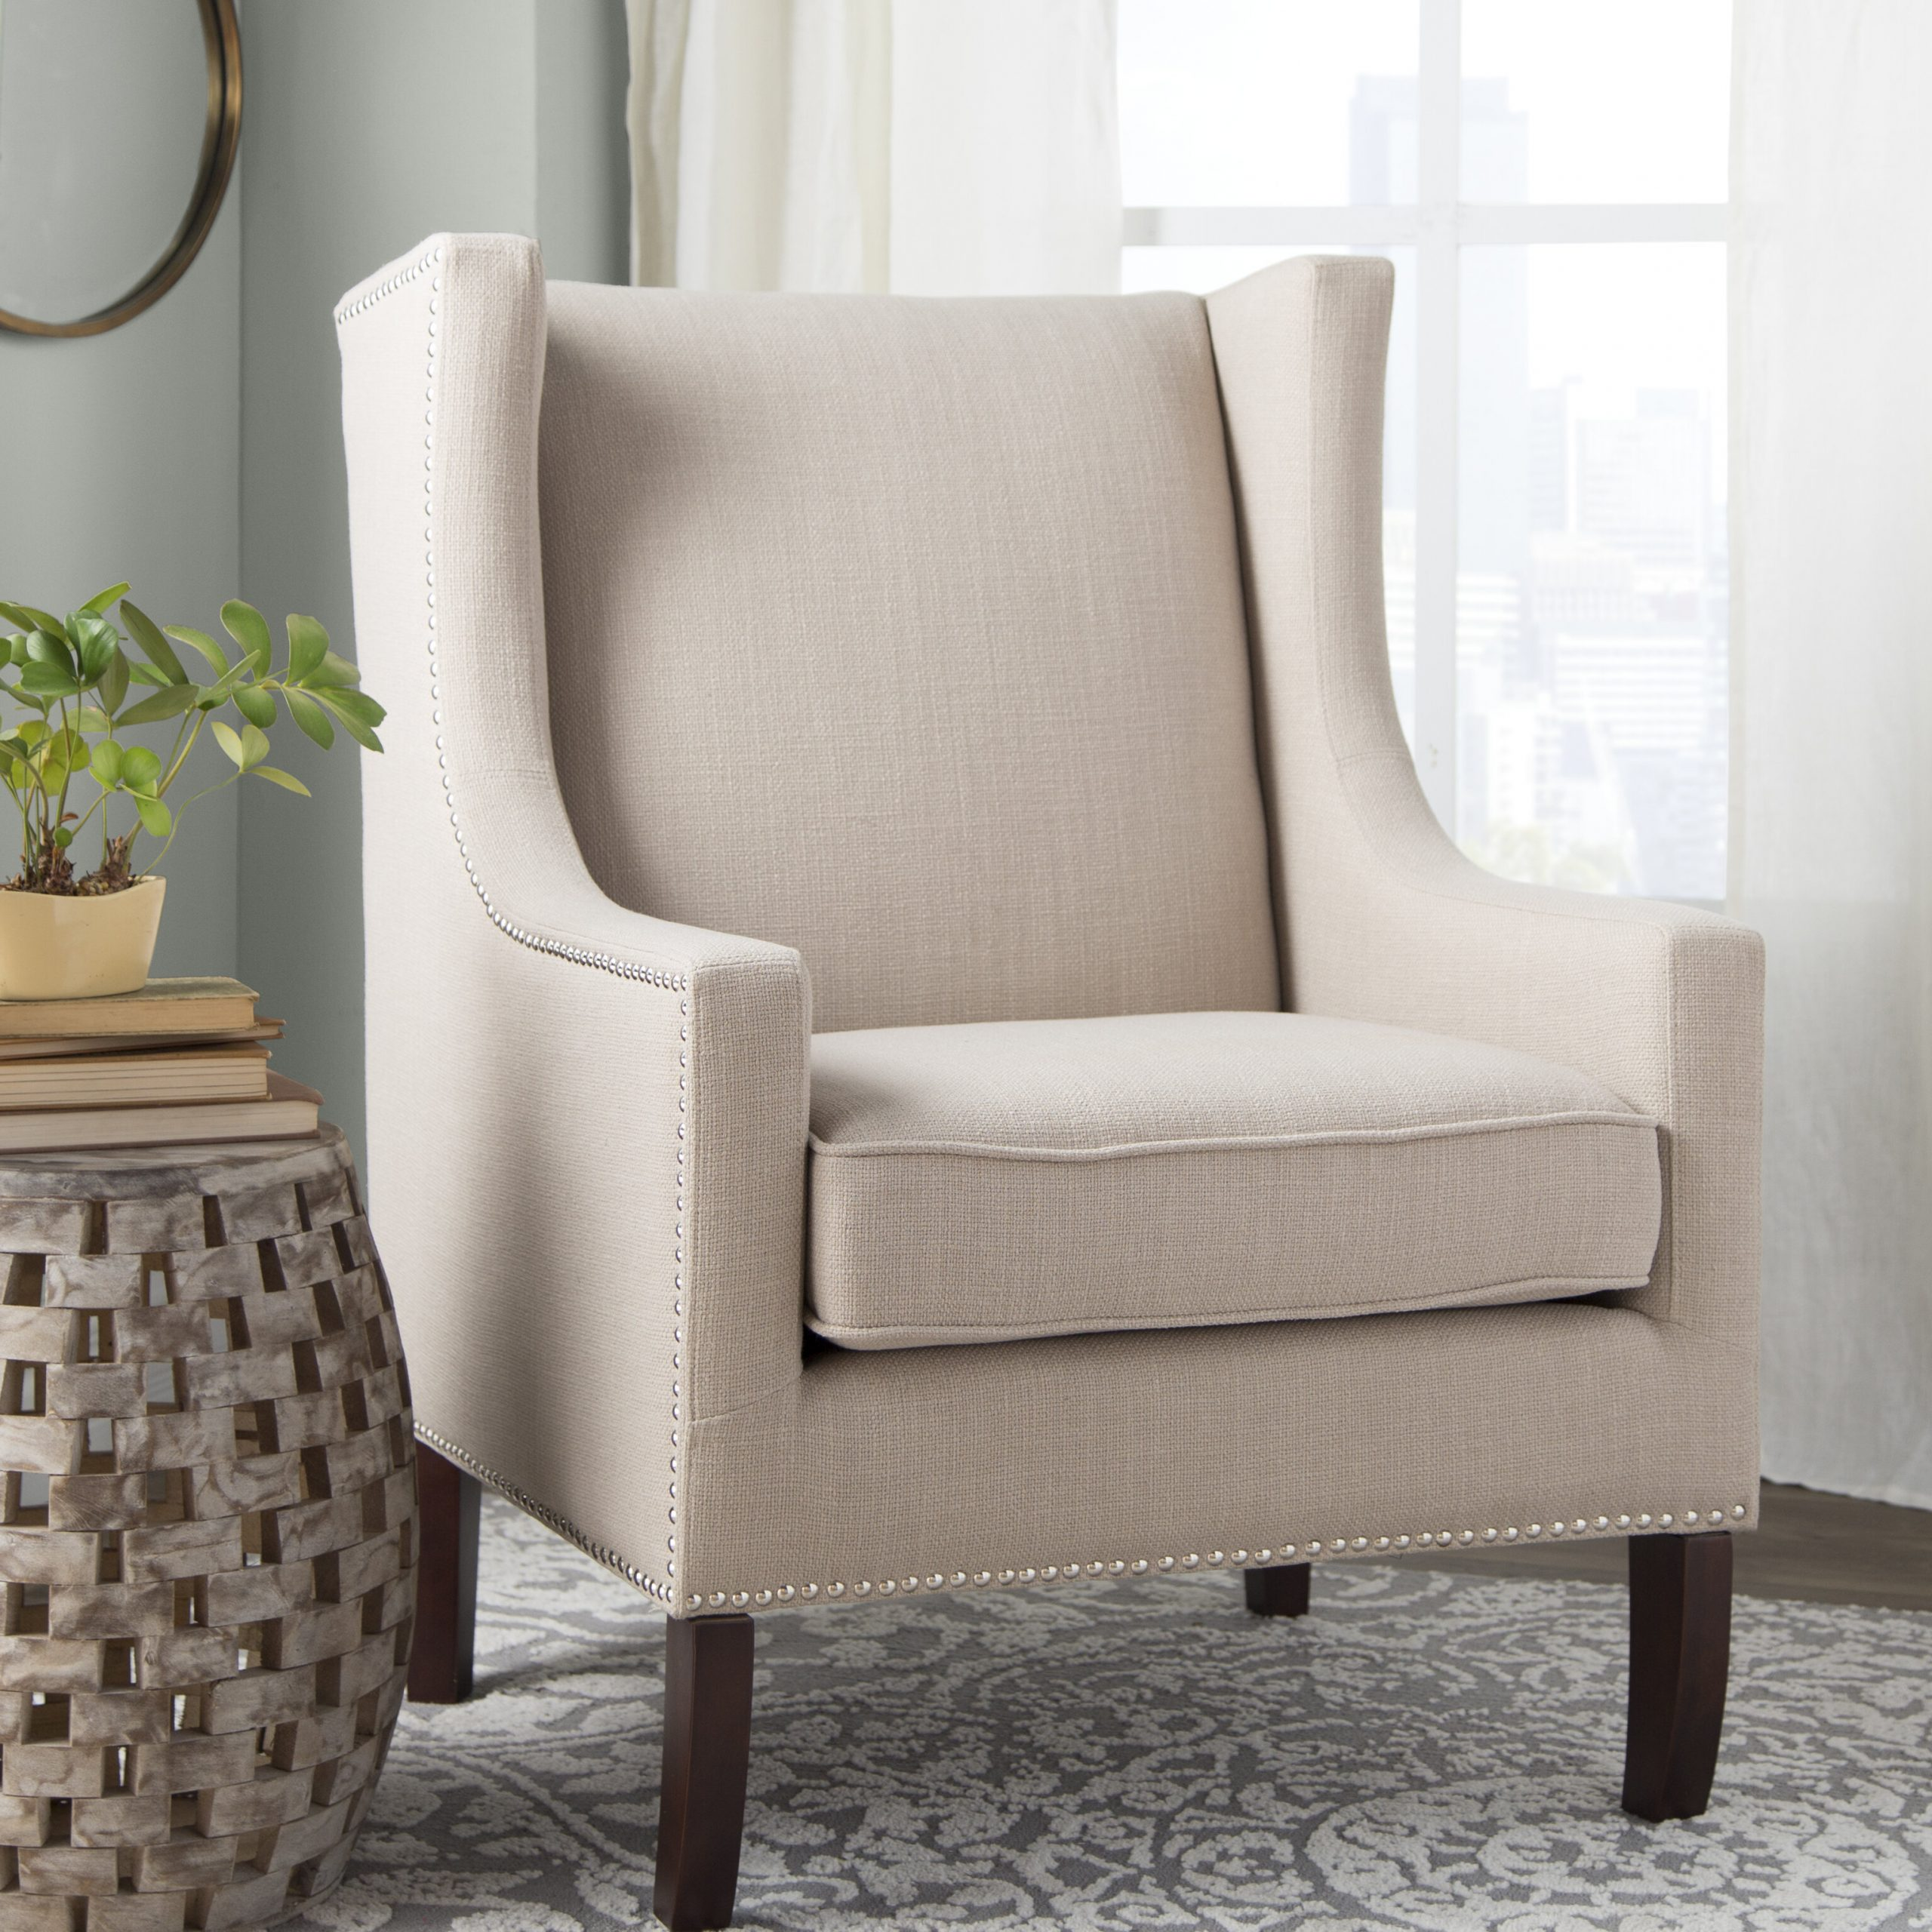 Wayfair Intended For 2019 Lakeville Armchairs (View 10 of 20)